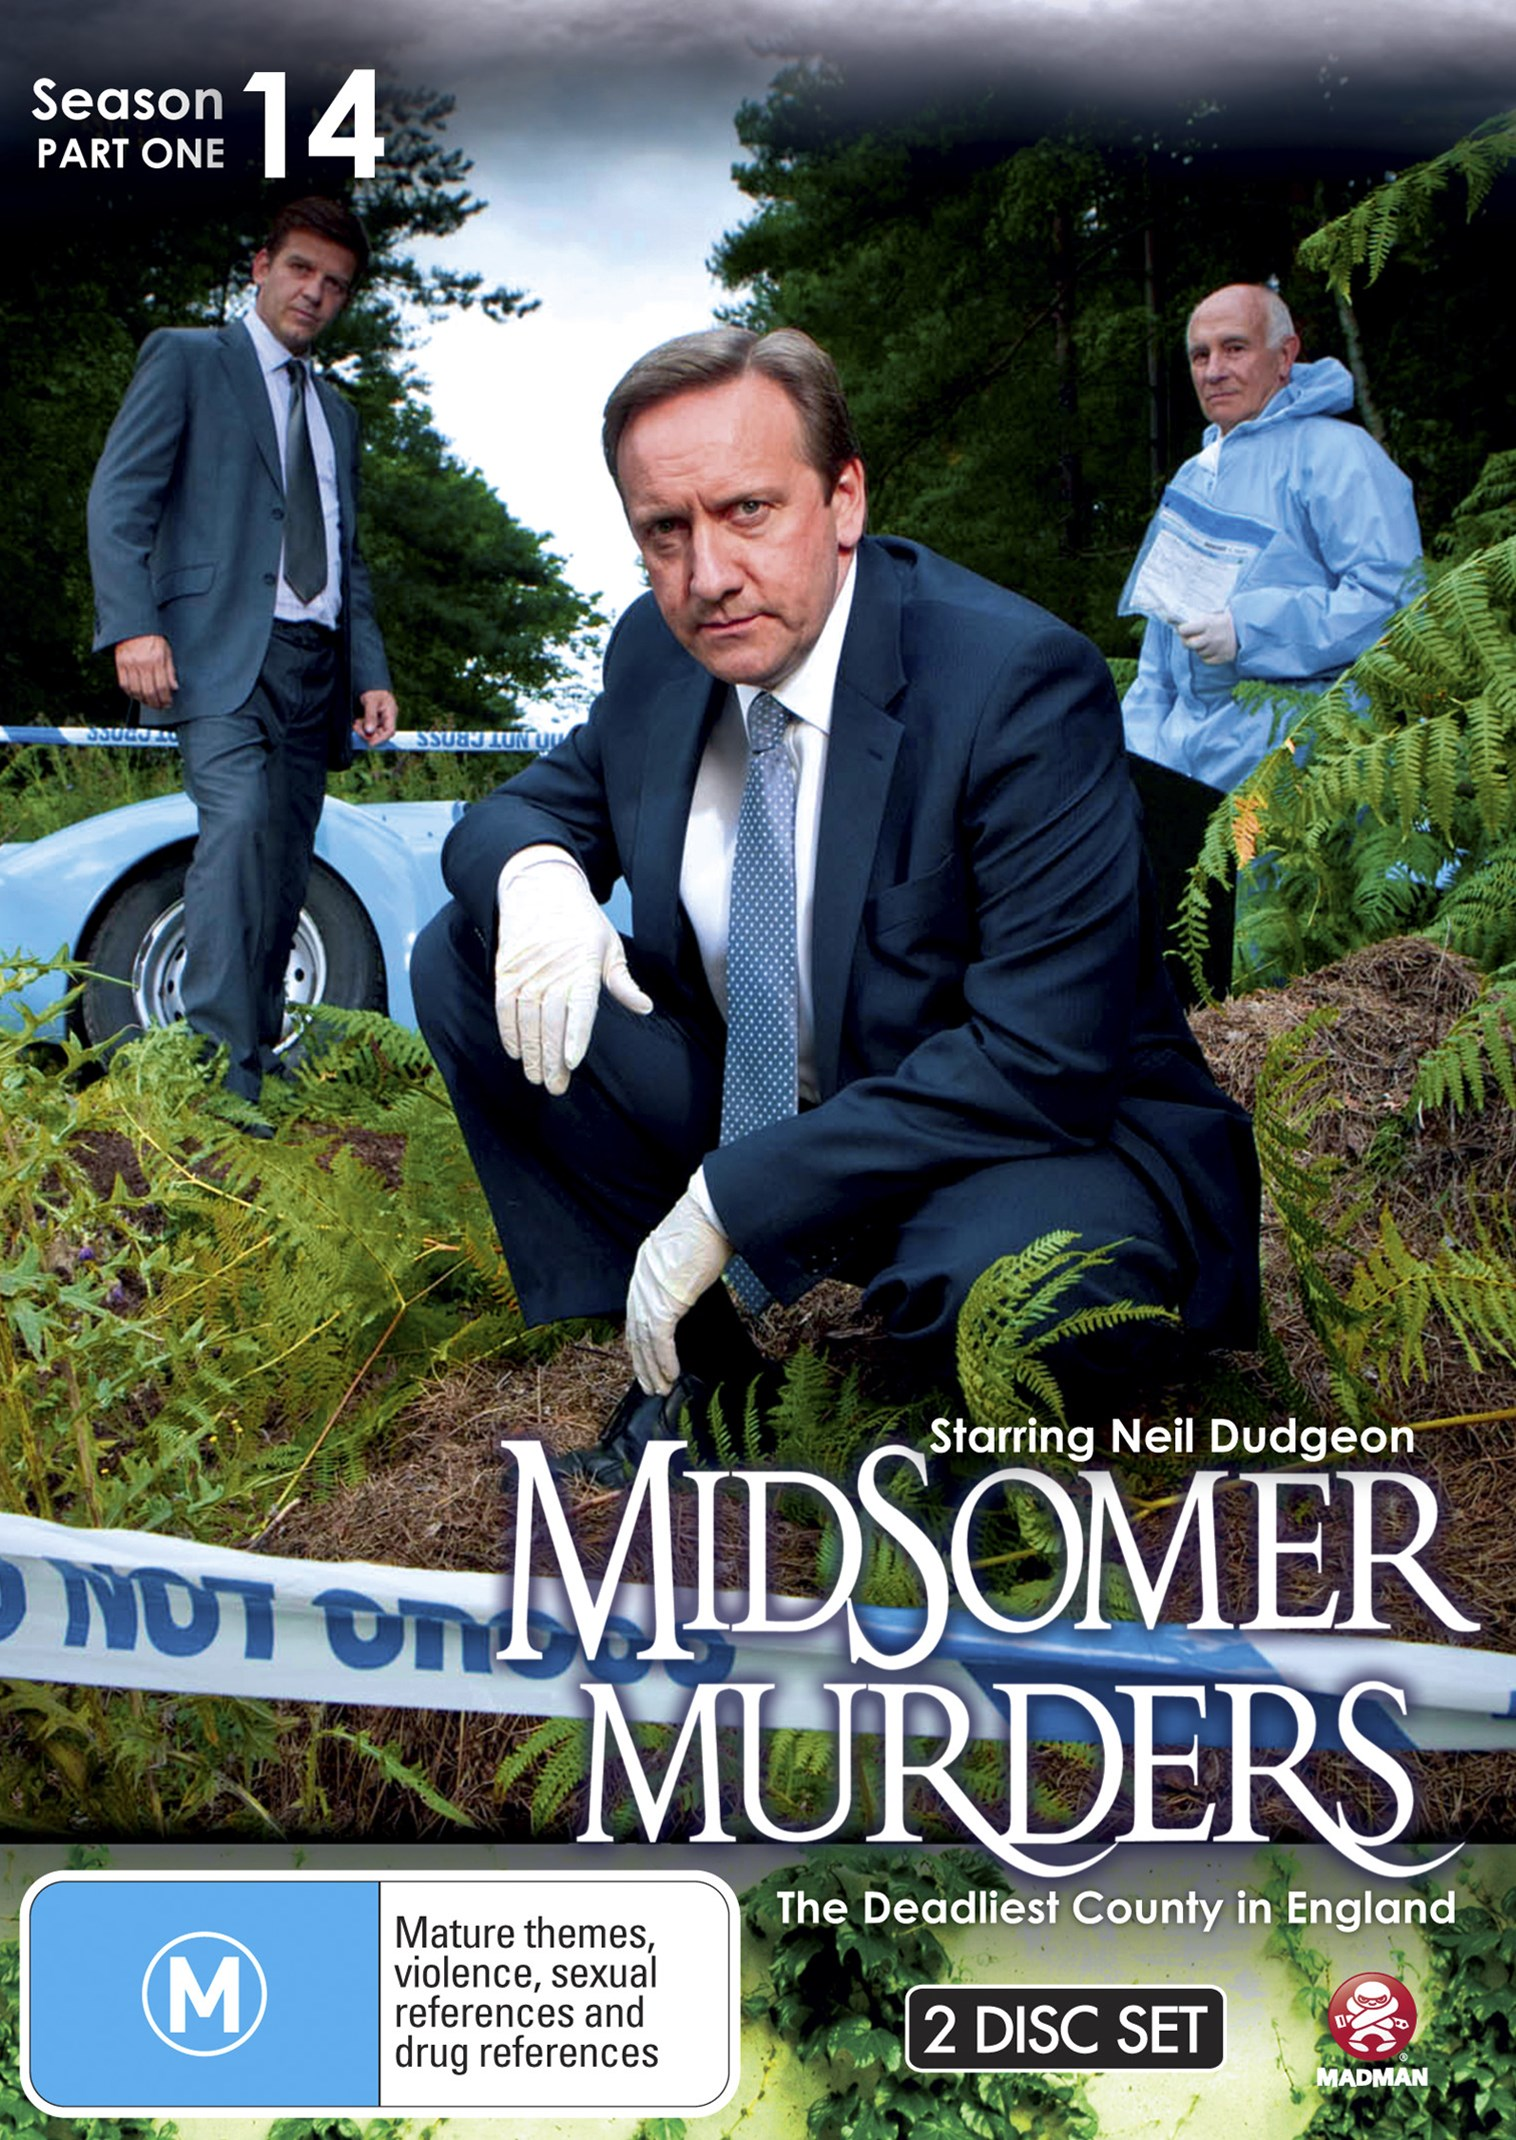 Midsomer Murders: Season 14 - Part 1